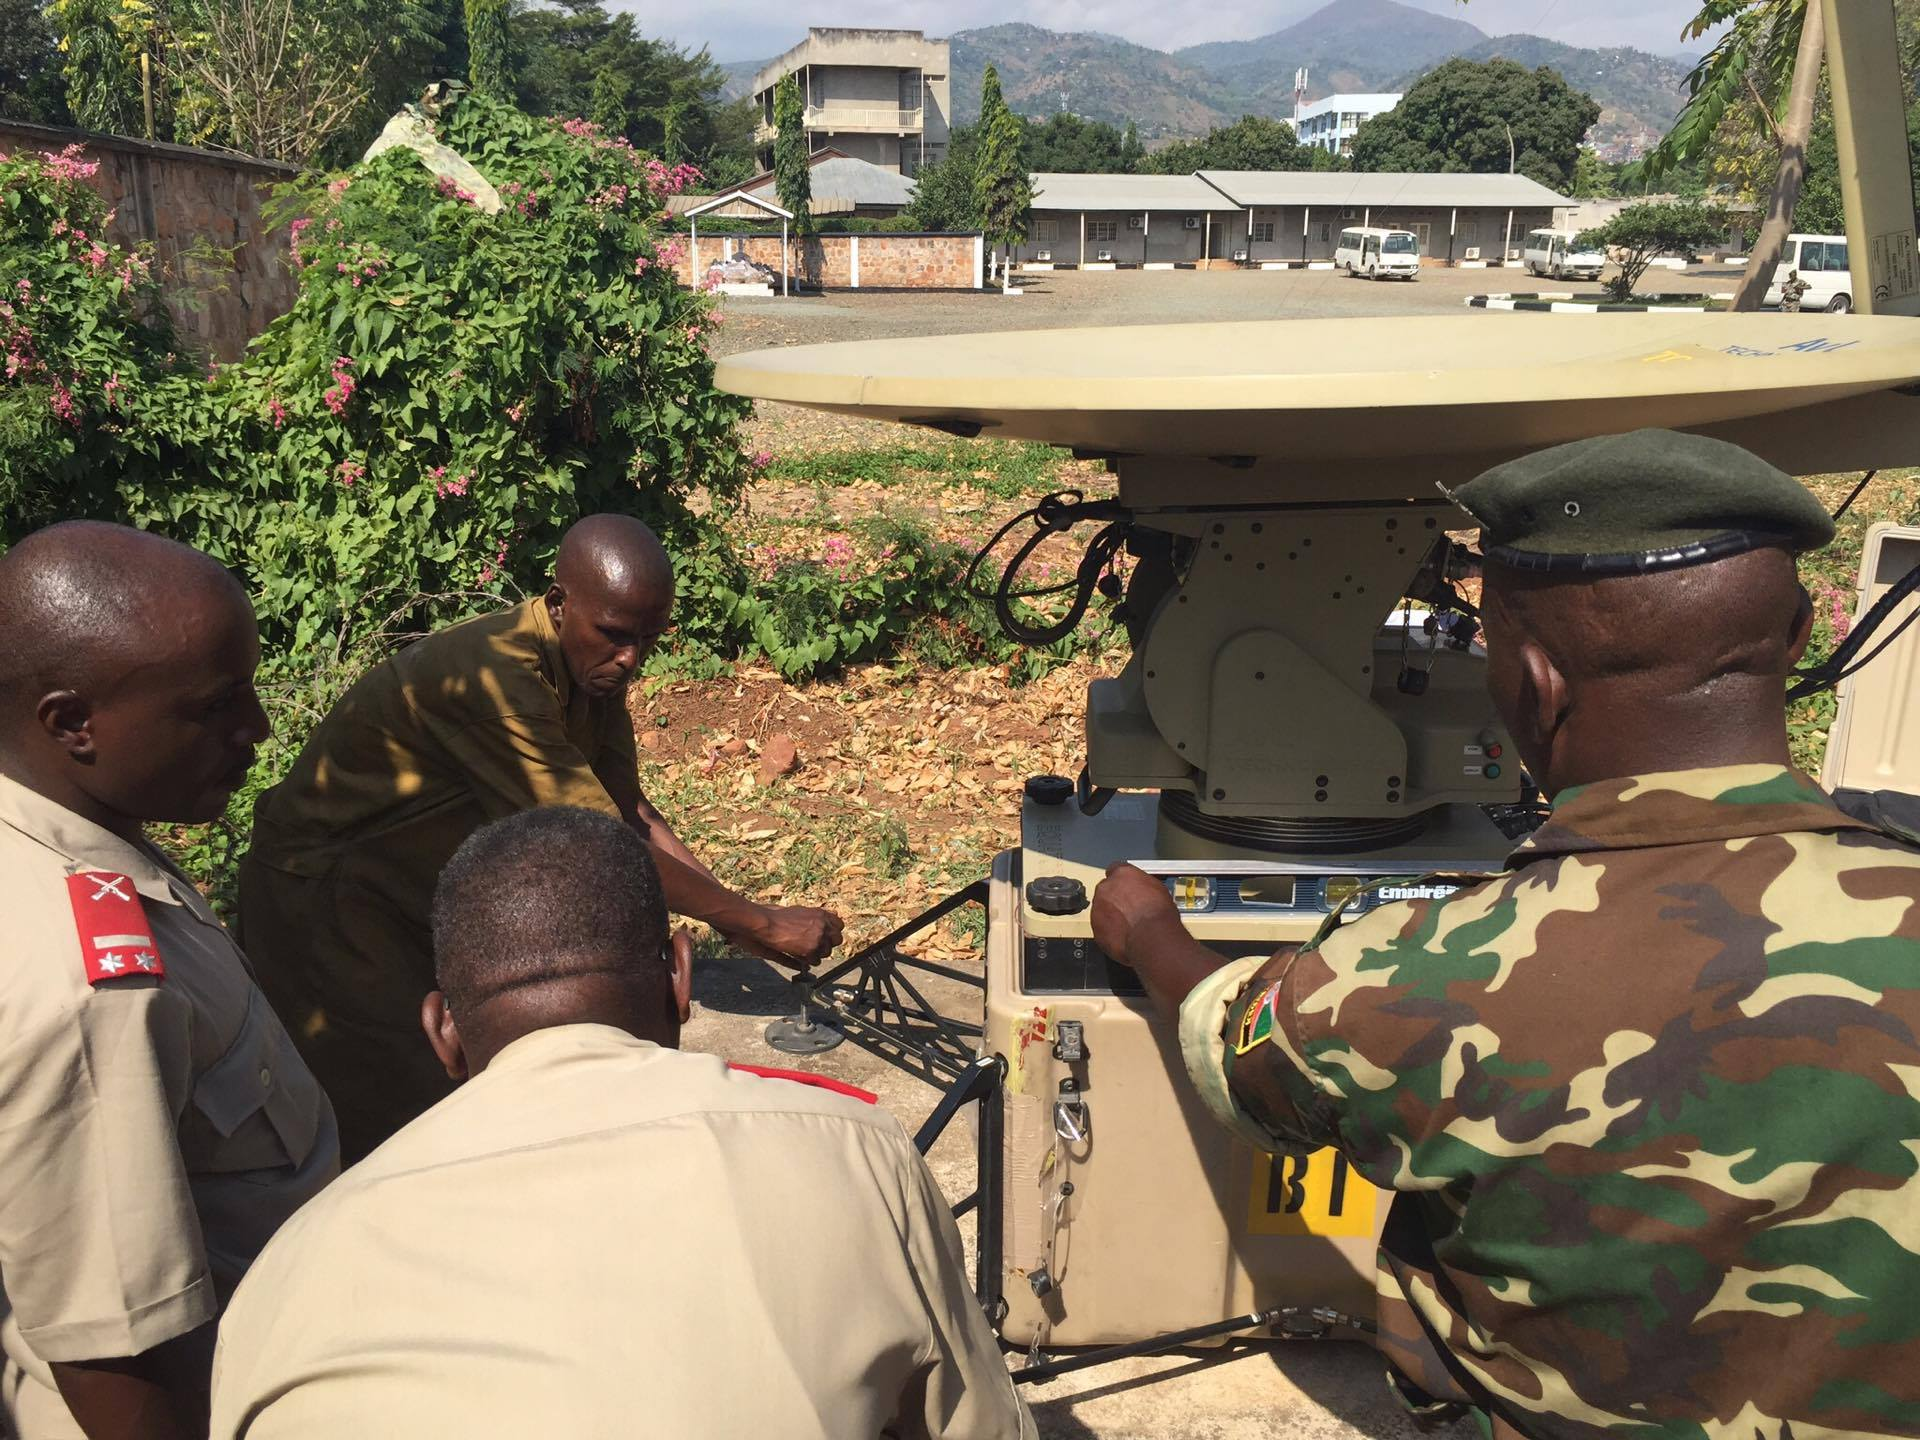 Burundian National Defense Force Soldiers work together to install their African Data Sharing Network terminal June 8-17, 2016, at Bujumbura, Burundi. Combined Joint Task Force–Horn of Africa communication Soldiers led a sharing of best practices for installing, operating, and maintaining their ADSN satellite terminal.  The ADSN communication package provides a dynamic intelligence sharing platform for the African Union Mission in Somalia's troop contributing countries. (U.S. Army photo by 1st Lt. Justin R. Klatt)